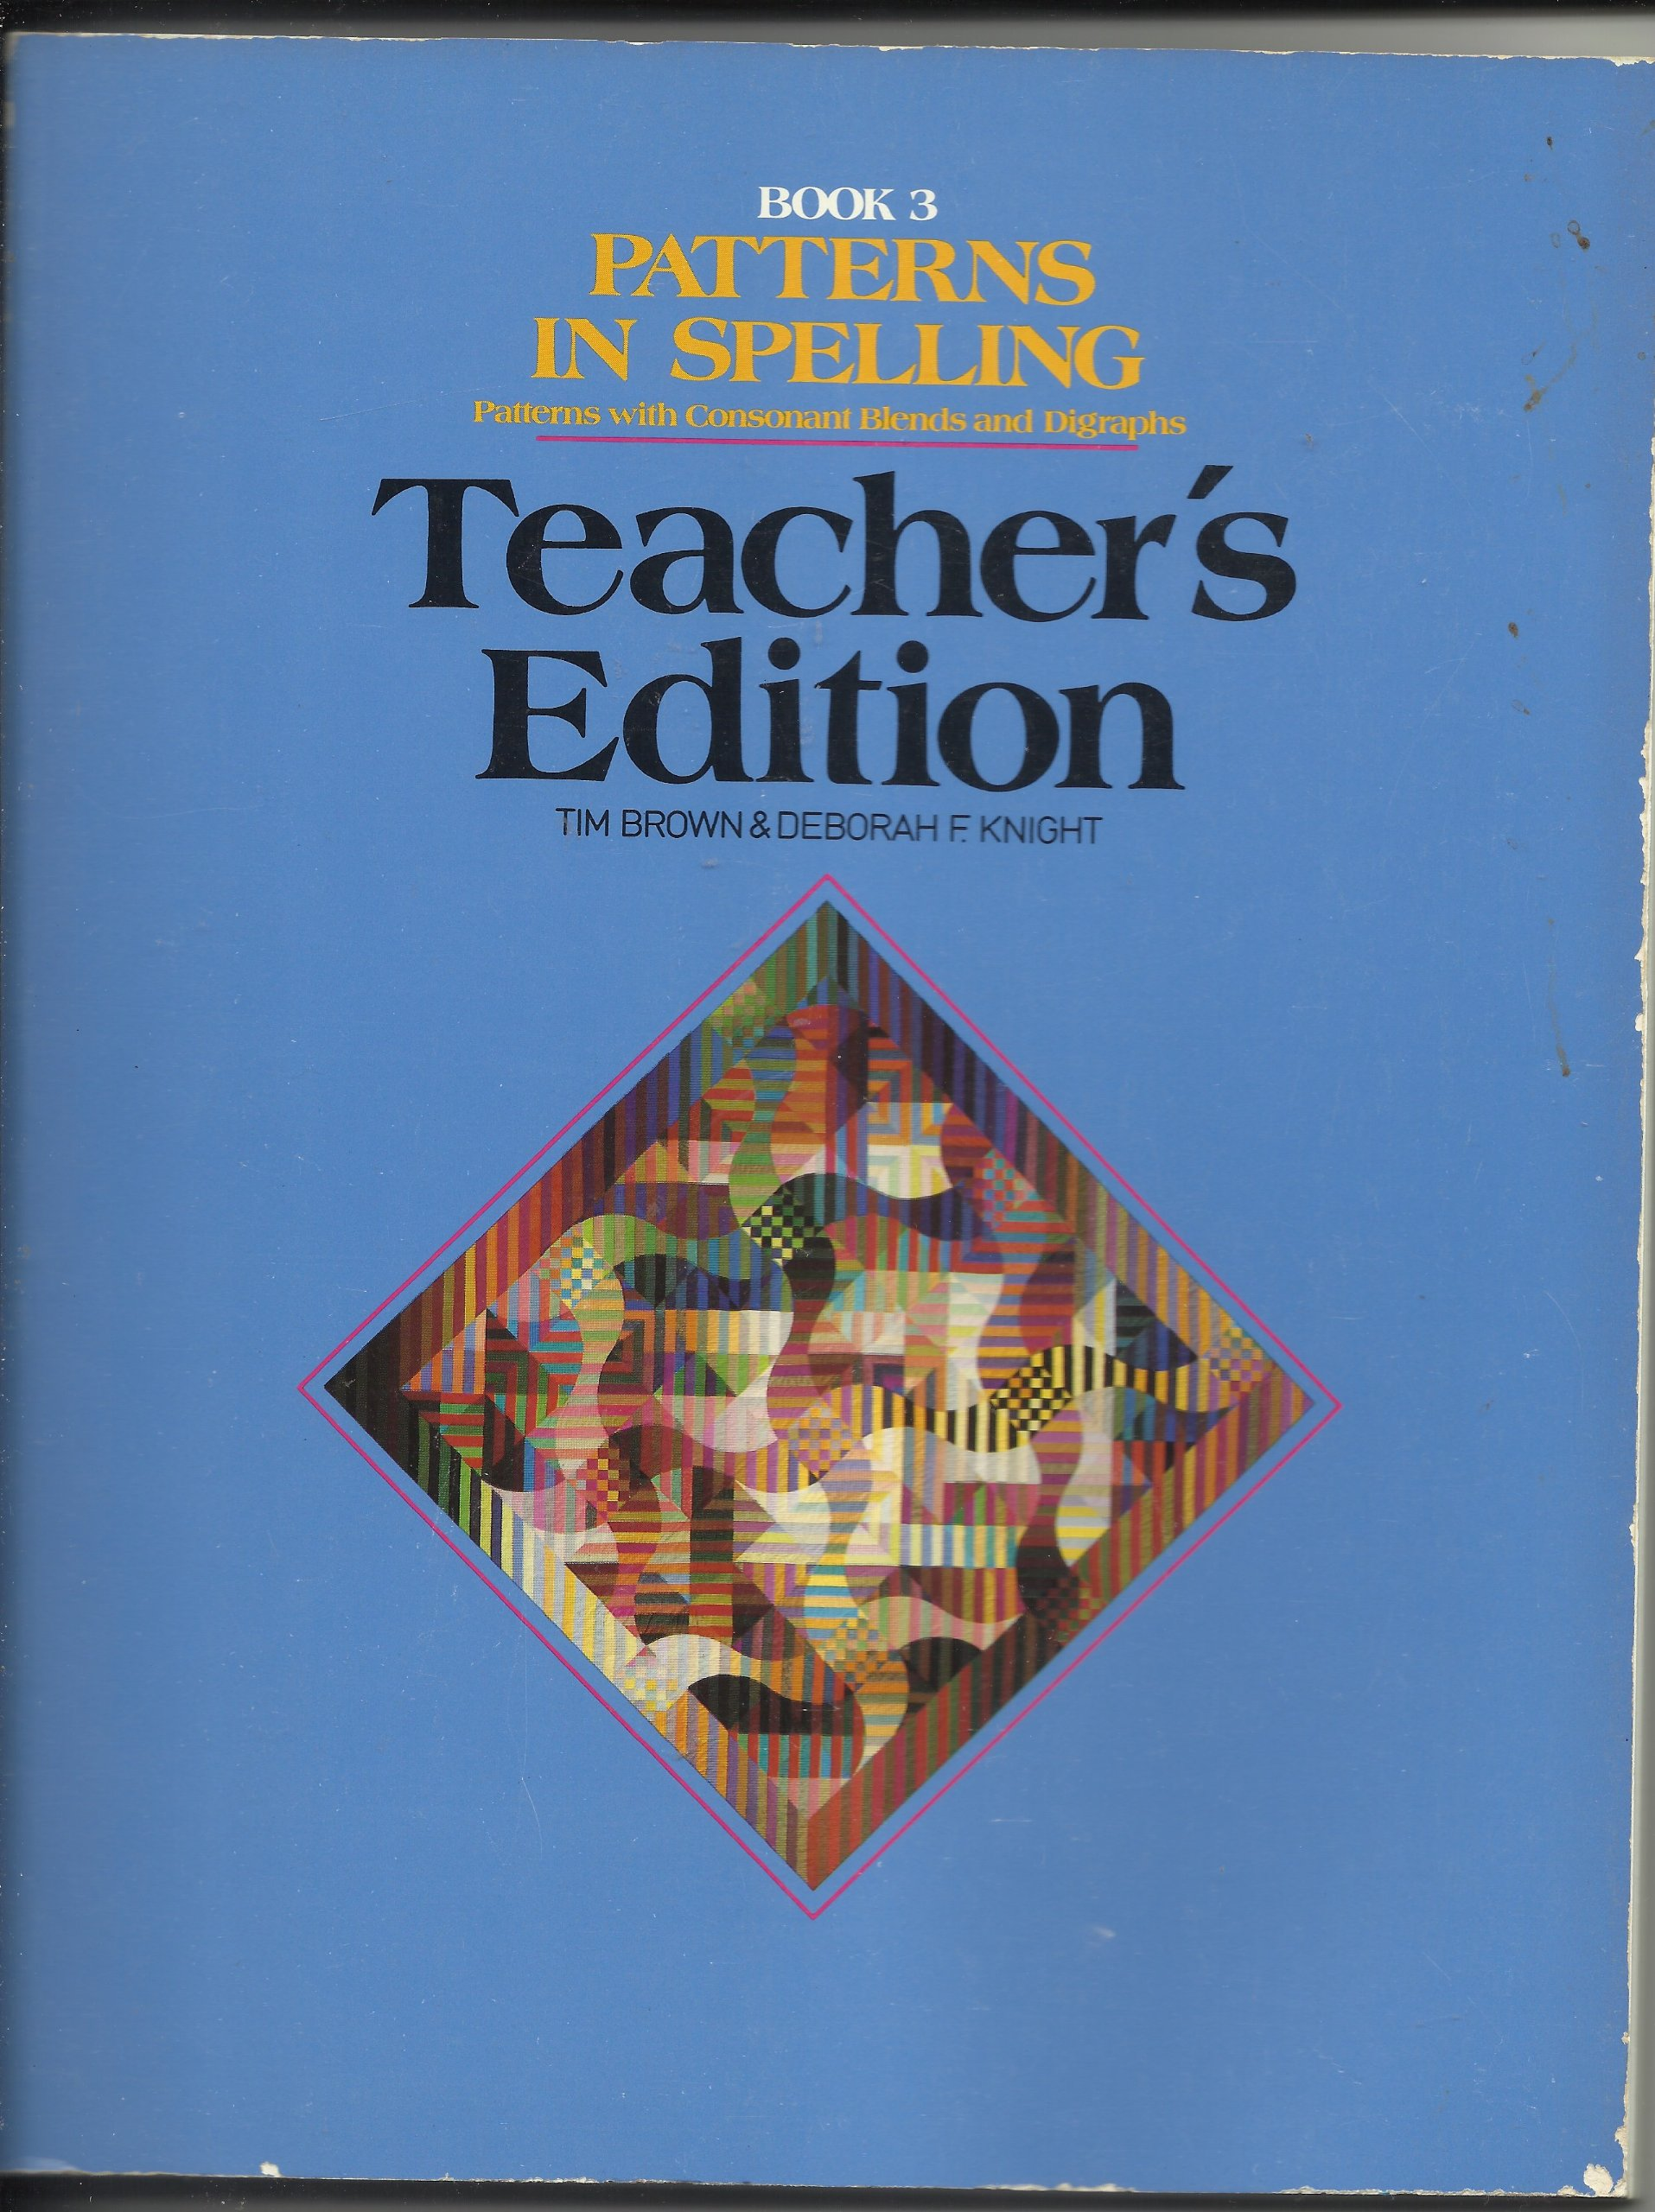 Patterns In Spelling  Patterns With Consonant Blends And Digraphs   Book 3